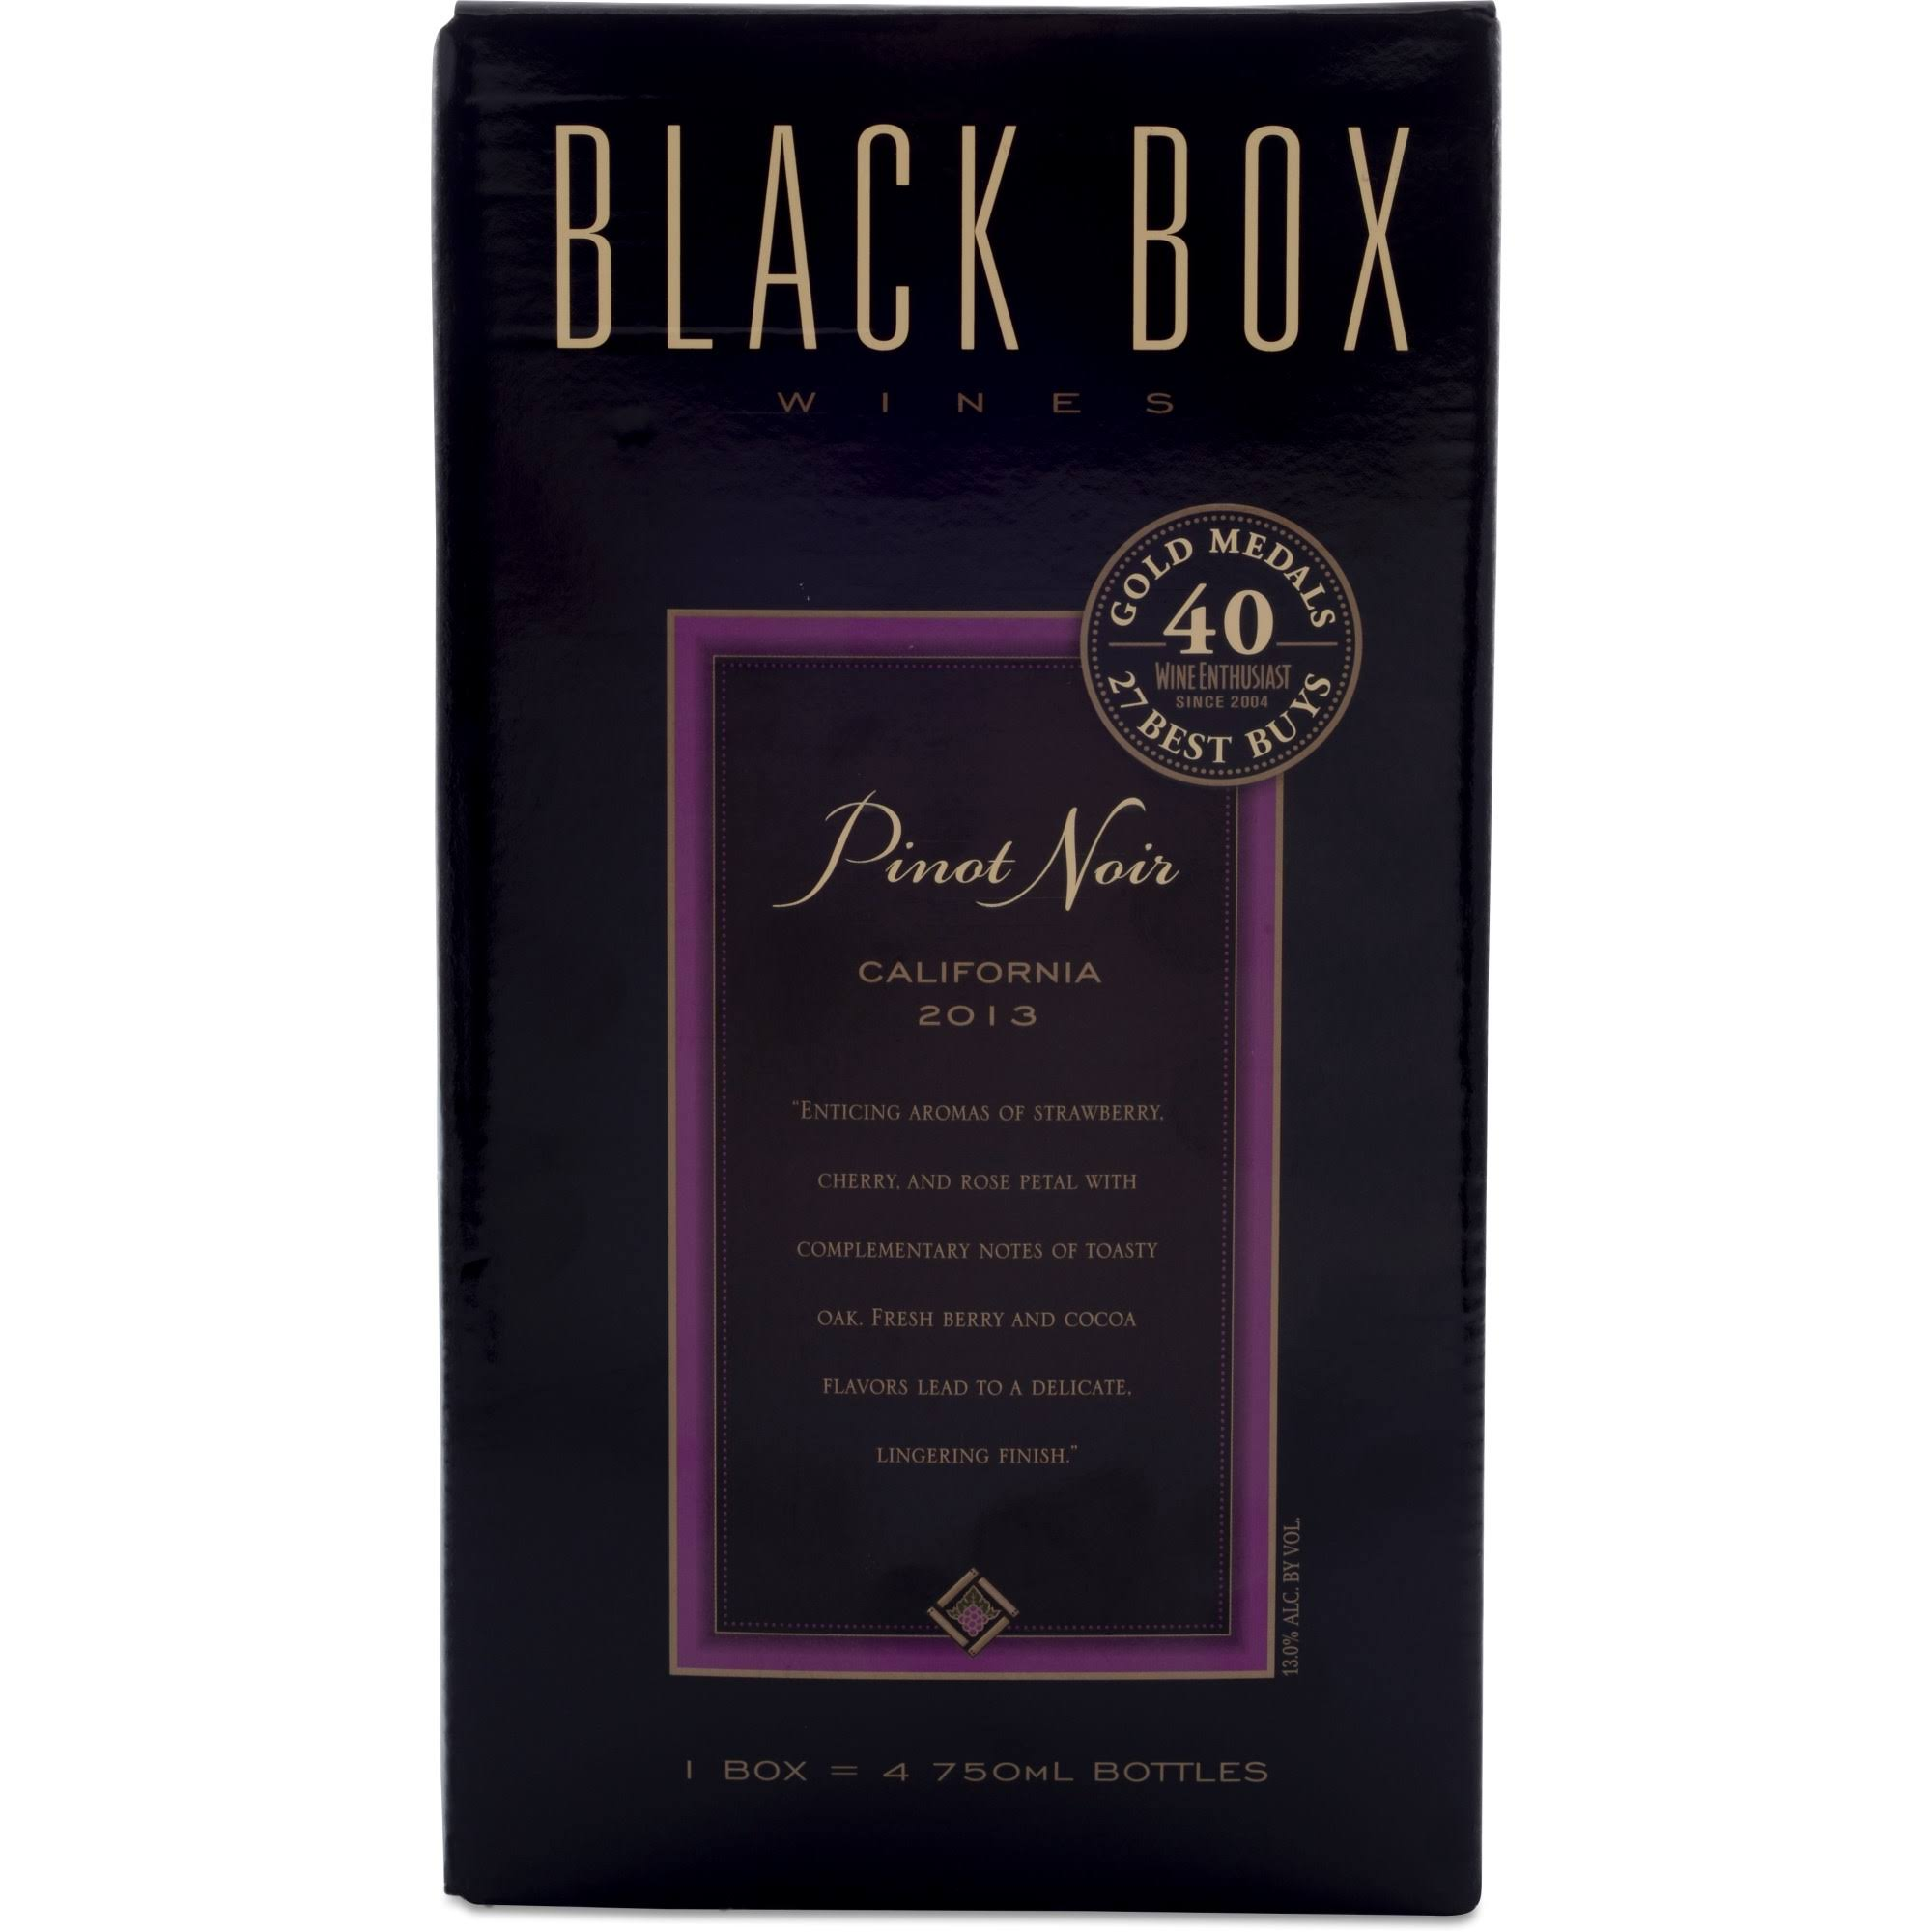 Black Box Pinot Noir - 3 L box